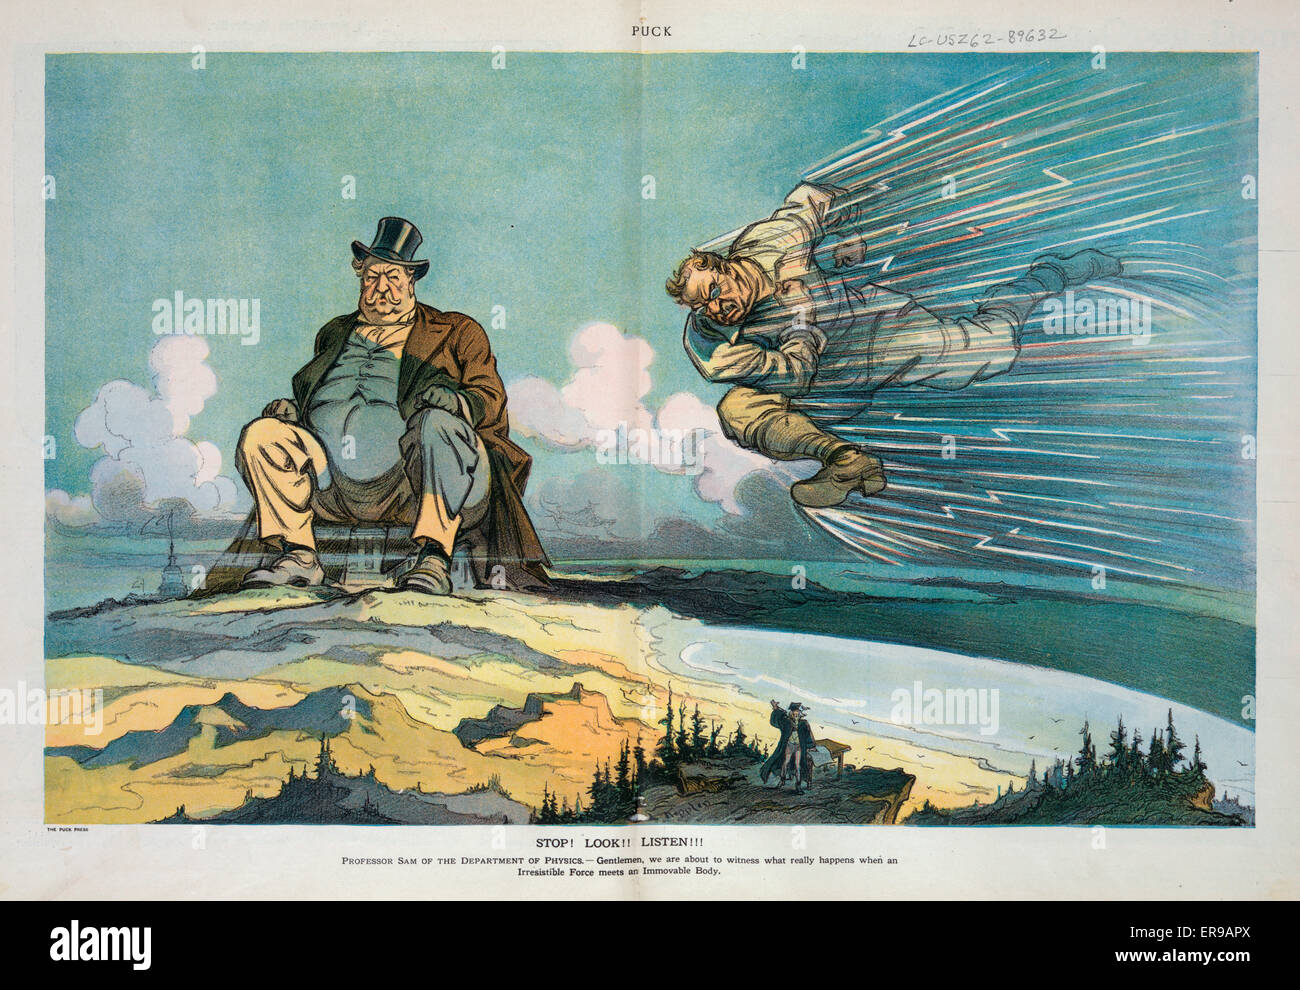 Stop! Look!! Listen!!!. Ilustration shows Theodore Roosevelt charging through air at a high rate of speed at an - Stock Image